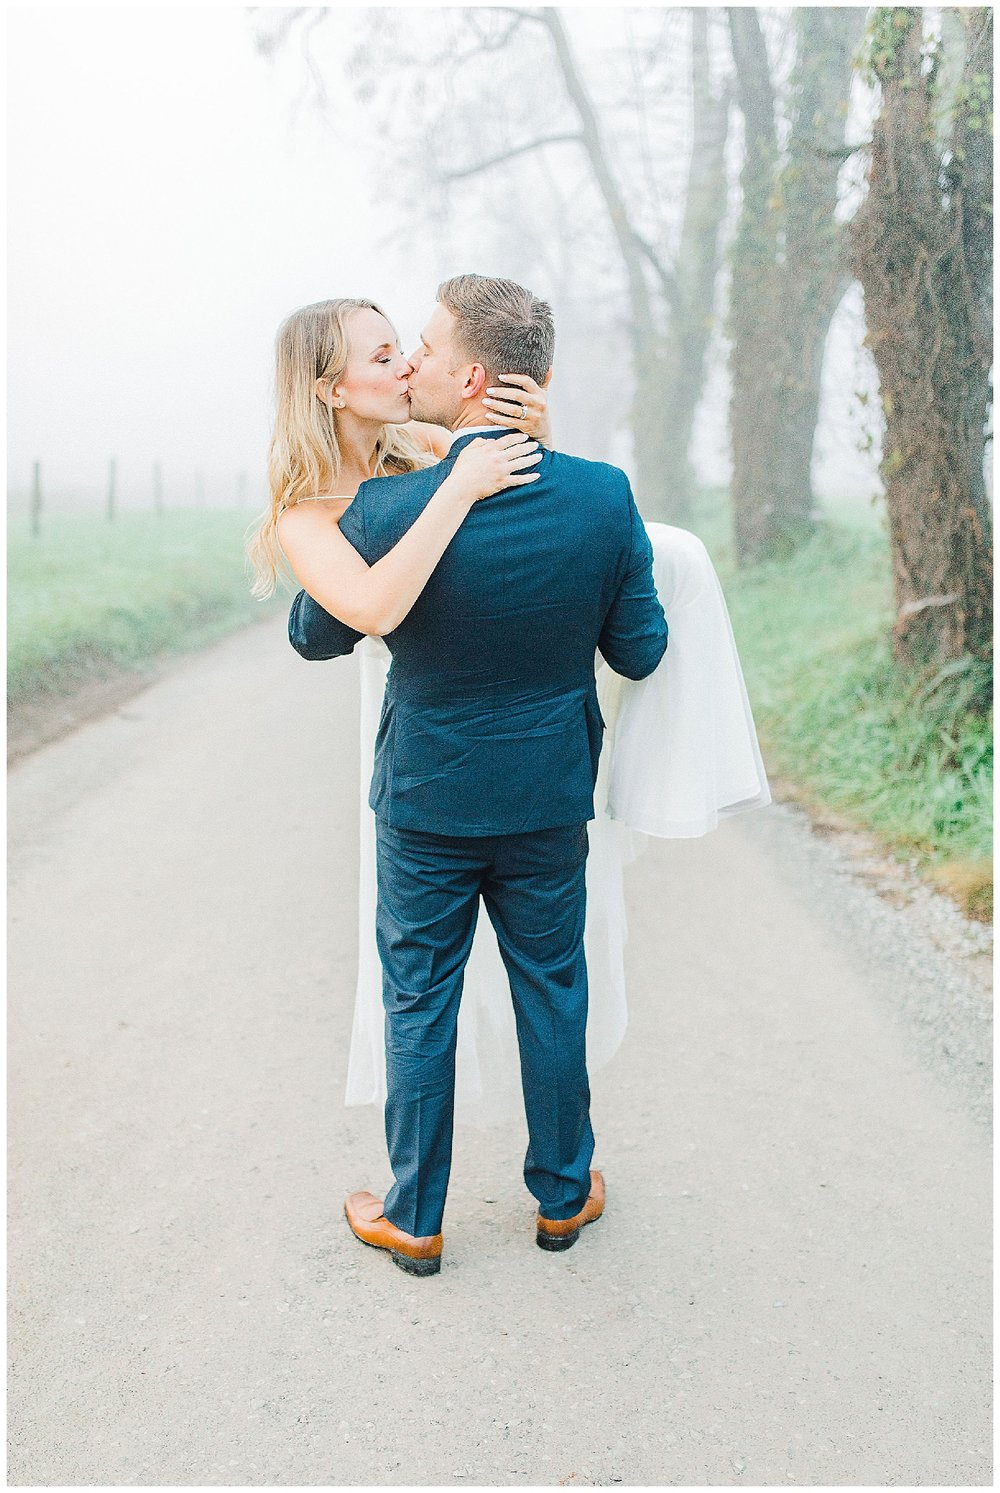 Emma Rose Company recently got to travel all the way to Nashville to photograph the most beautiful post-wedding bride and groom portraits in the Great Smoky Mountains with a gorgeous couple! Nashville wedding inspiration at it's finest._0010.jpg